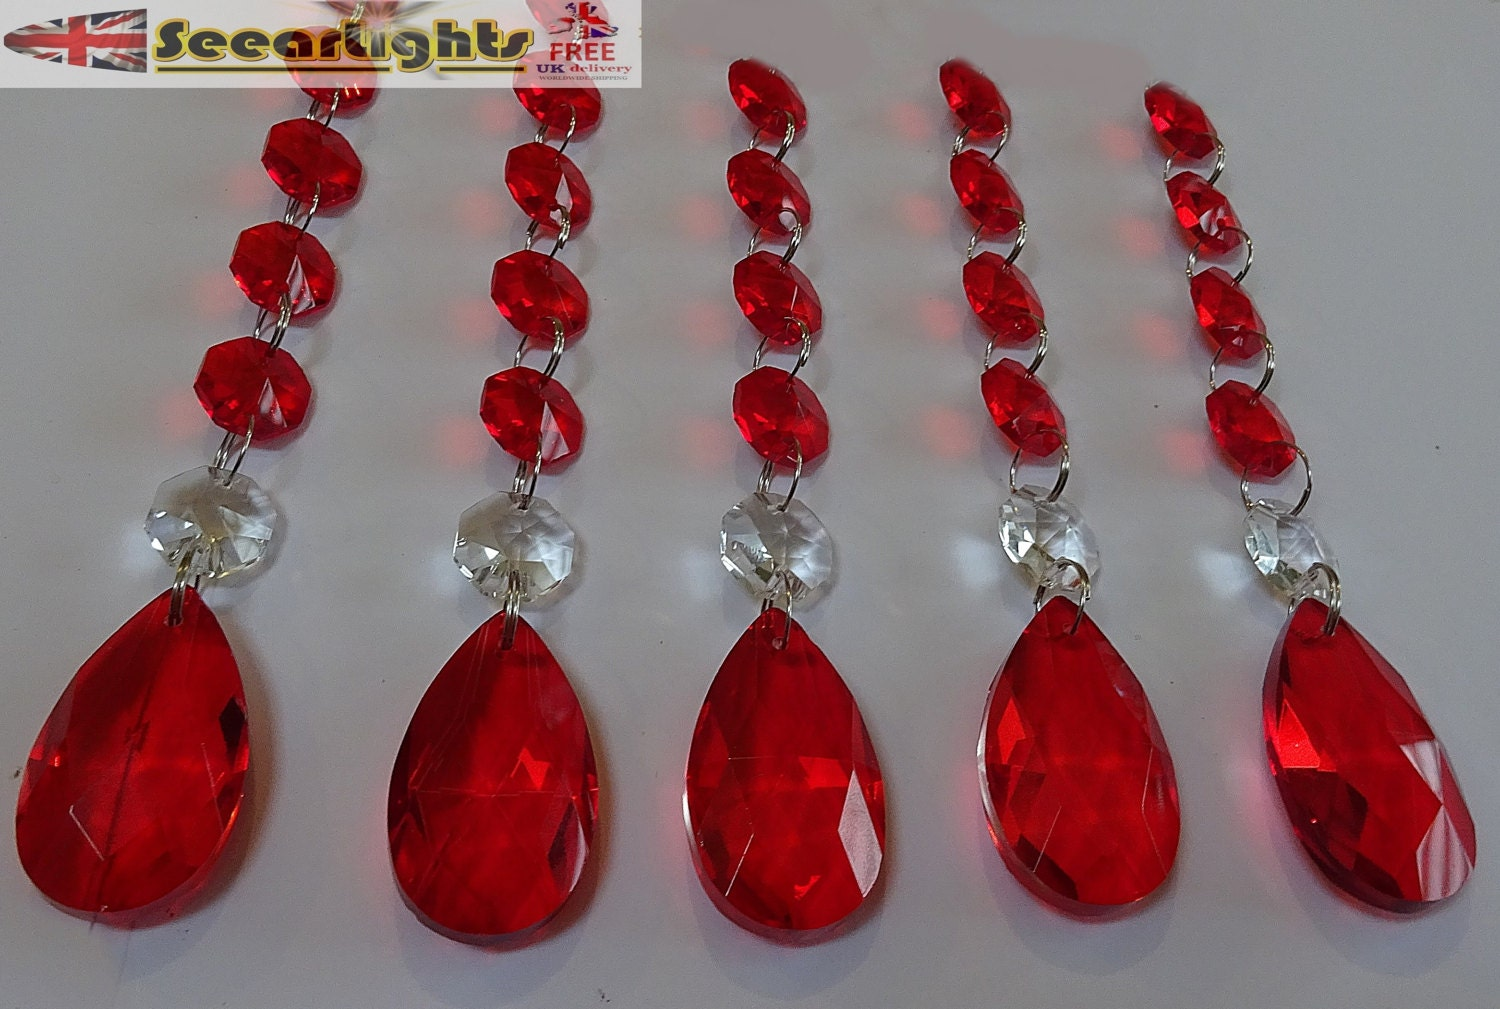 XL Chains Retro Vintage Red Chandelier Drops Glass Crystals - Red chandelier crystals